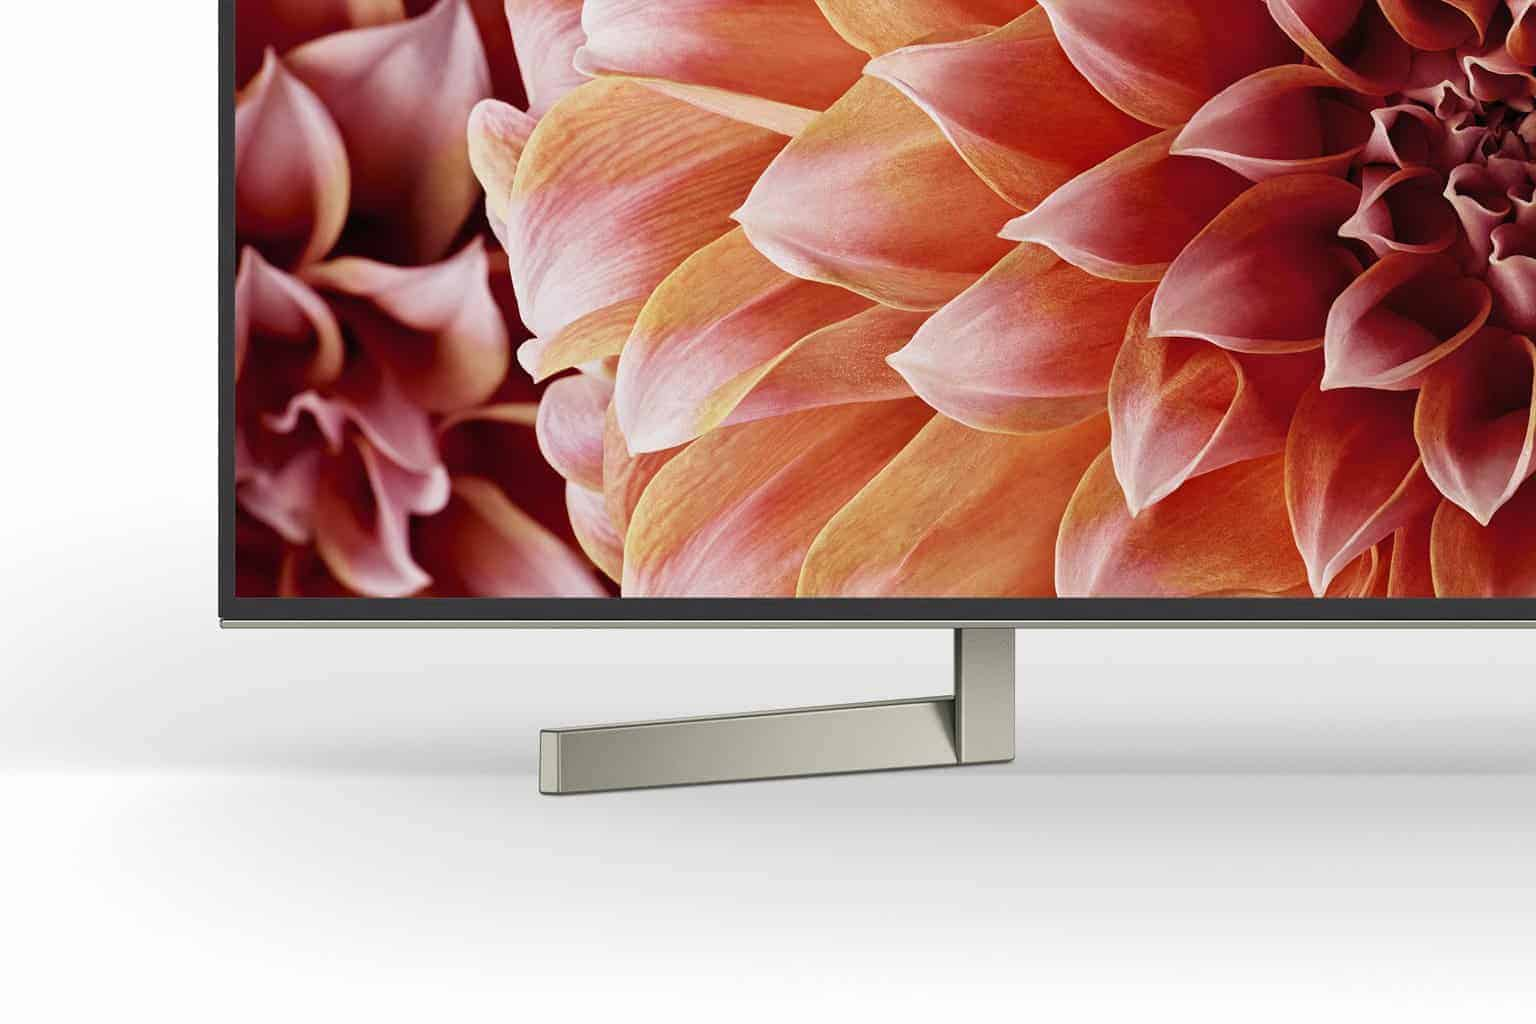 Sony KD-75XF9005 HDR LED-/LCD-TV mit Dolby Vision